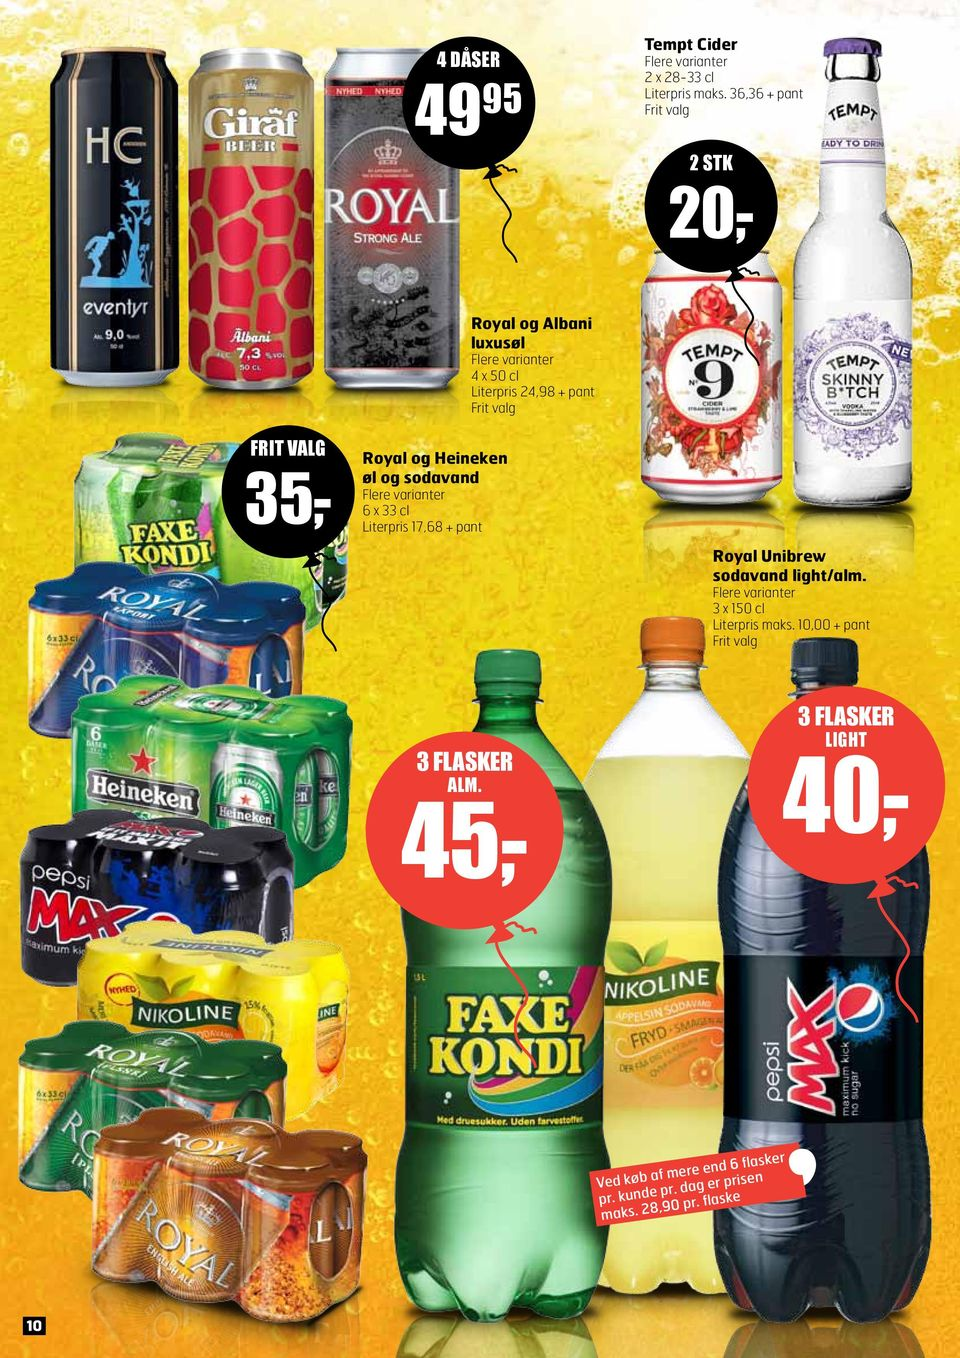 40,- 45,- Royal og Albani luxusøl 4 x 50 cl Literpris 24,98 + pant Royal Unibrew sodavand light/alm.